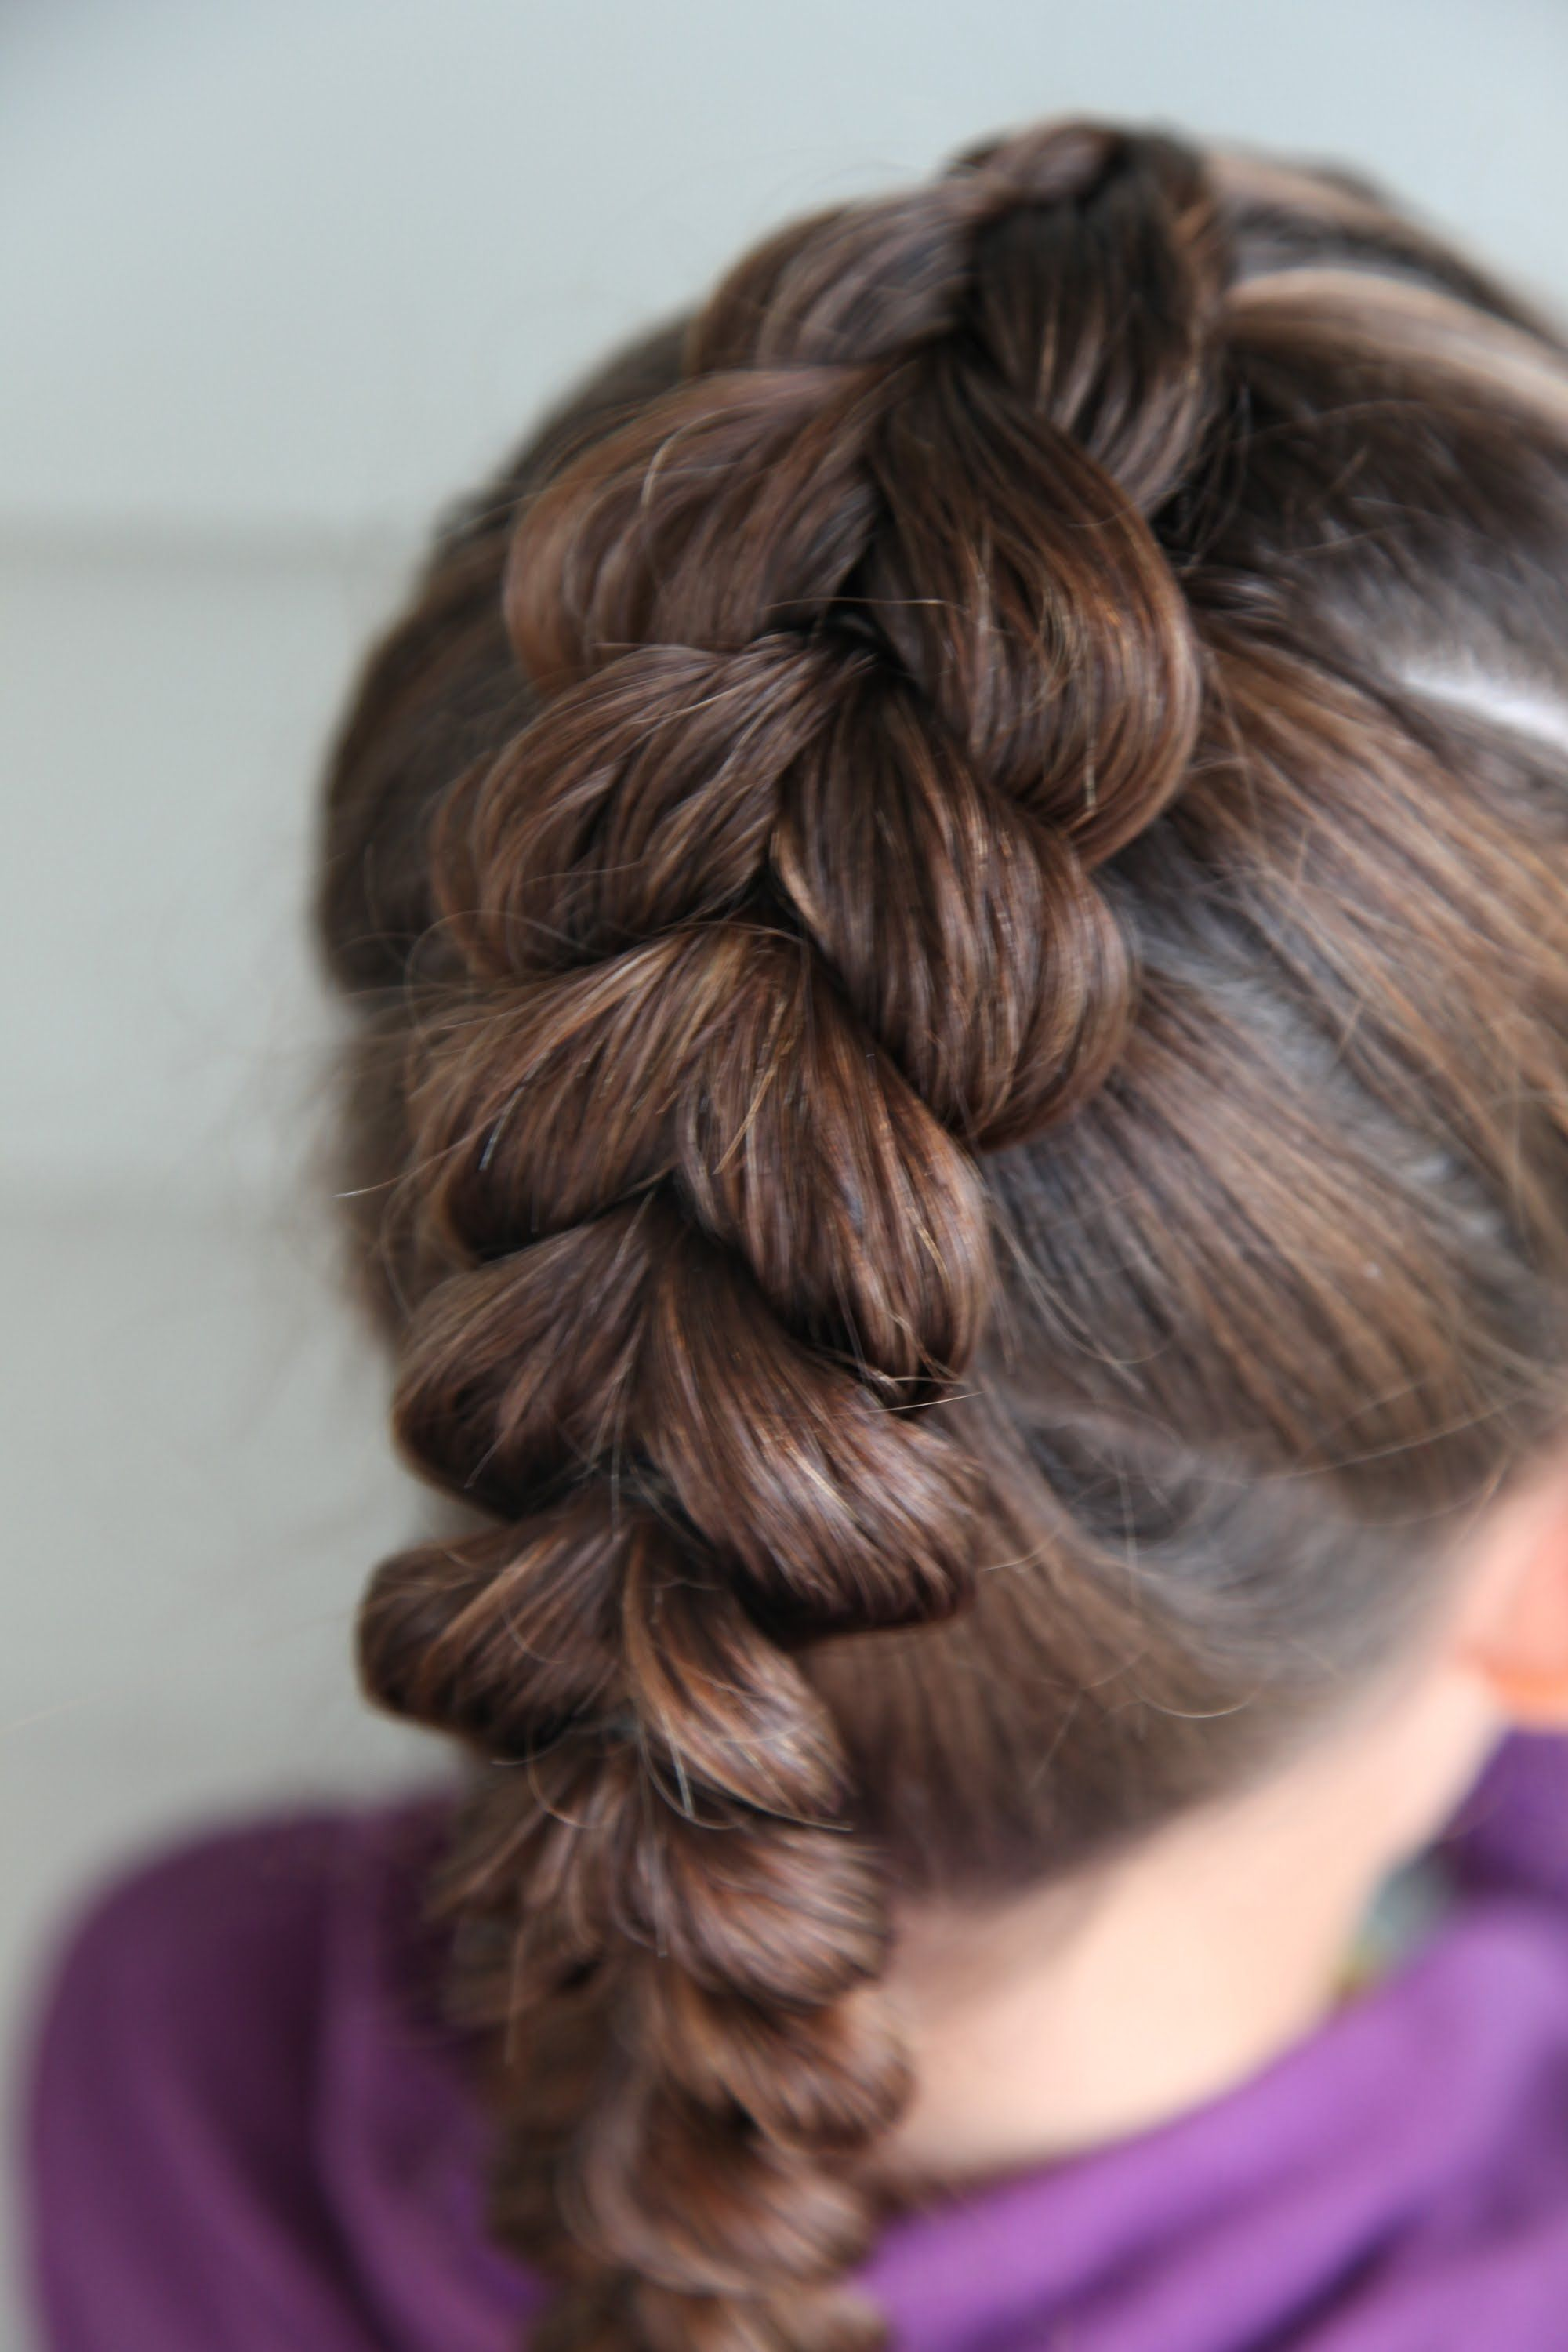 The knitted braid tutorial my style pinterest braid tutorials